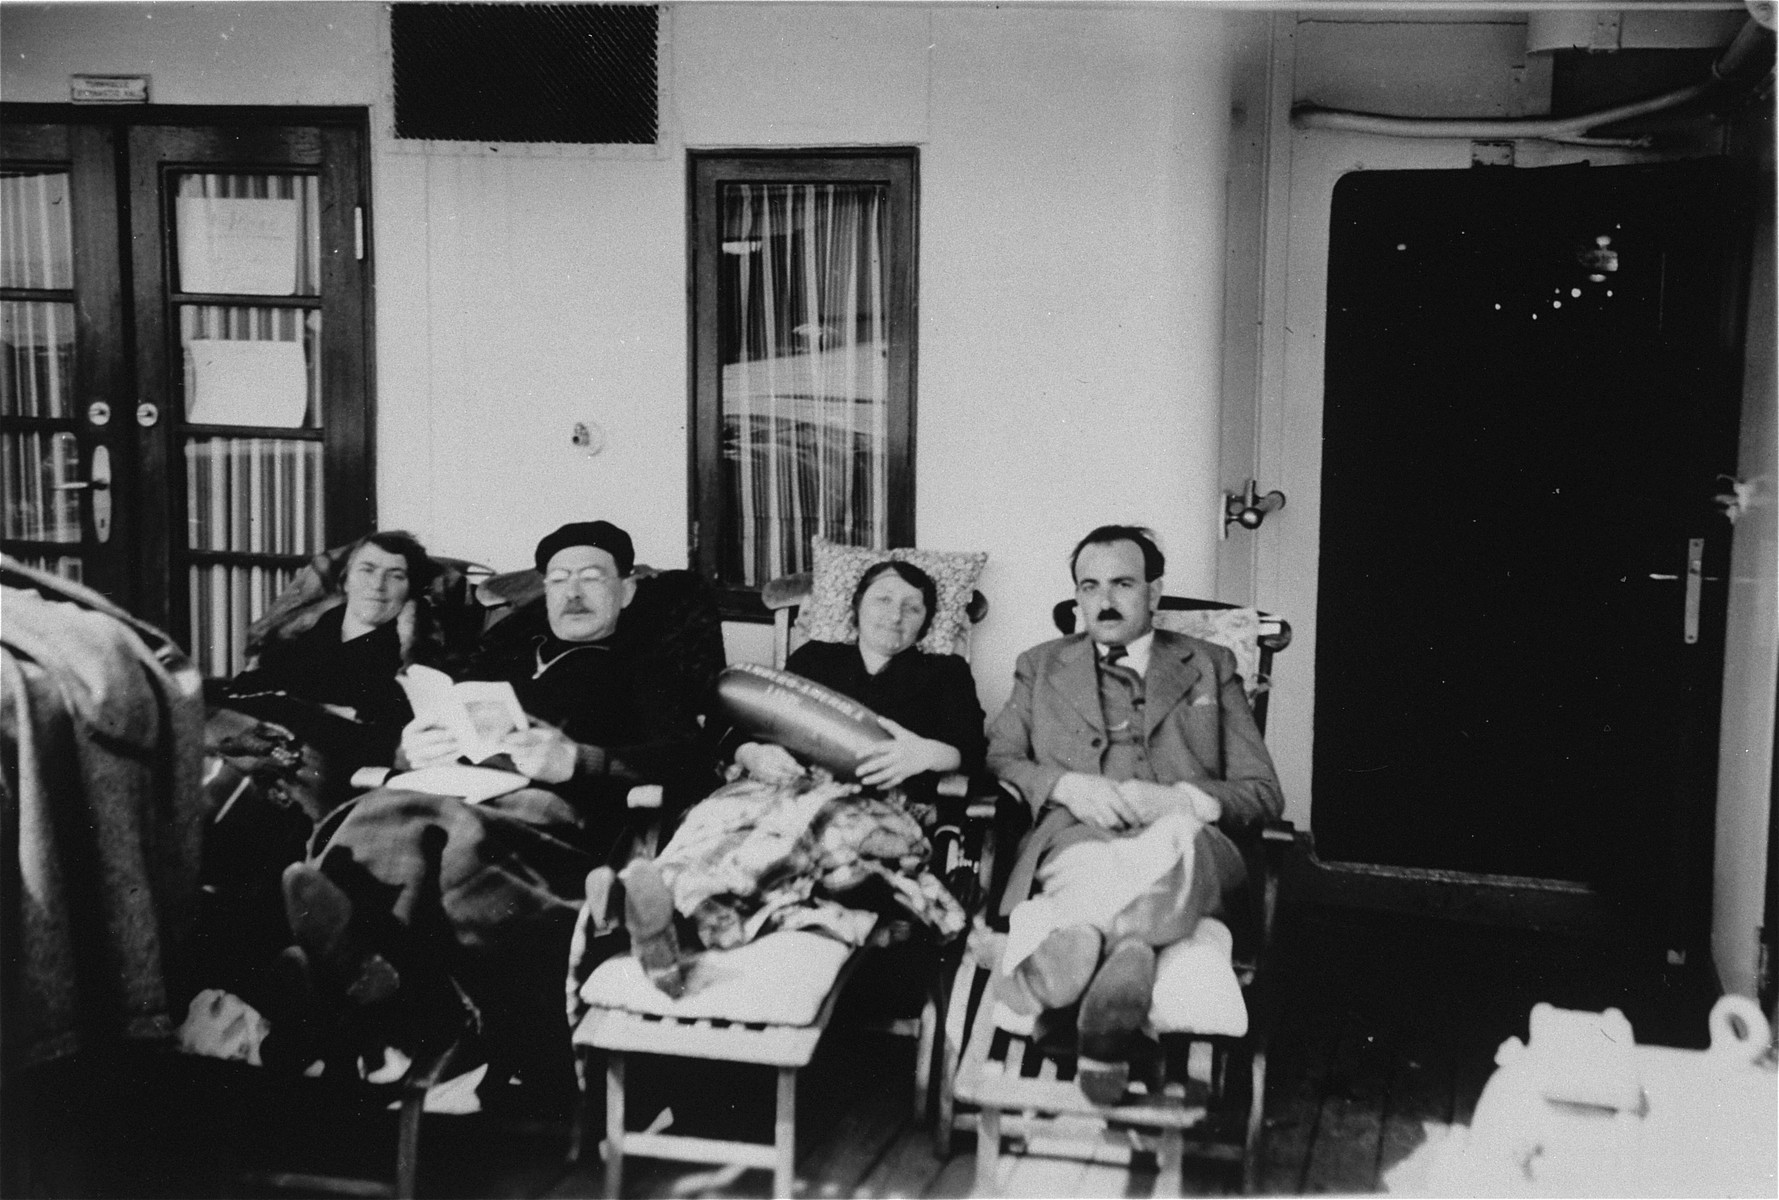 Passengers relax on the deck of the refugee ship MS St. Louis.     From a photo album belonging to St. Louis passenger Moritz Schoenberger.